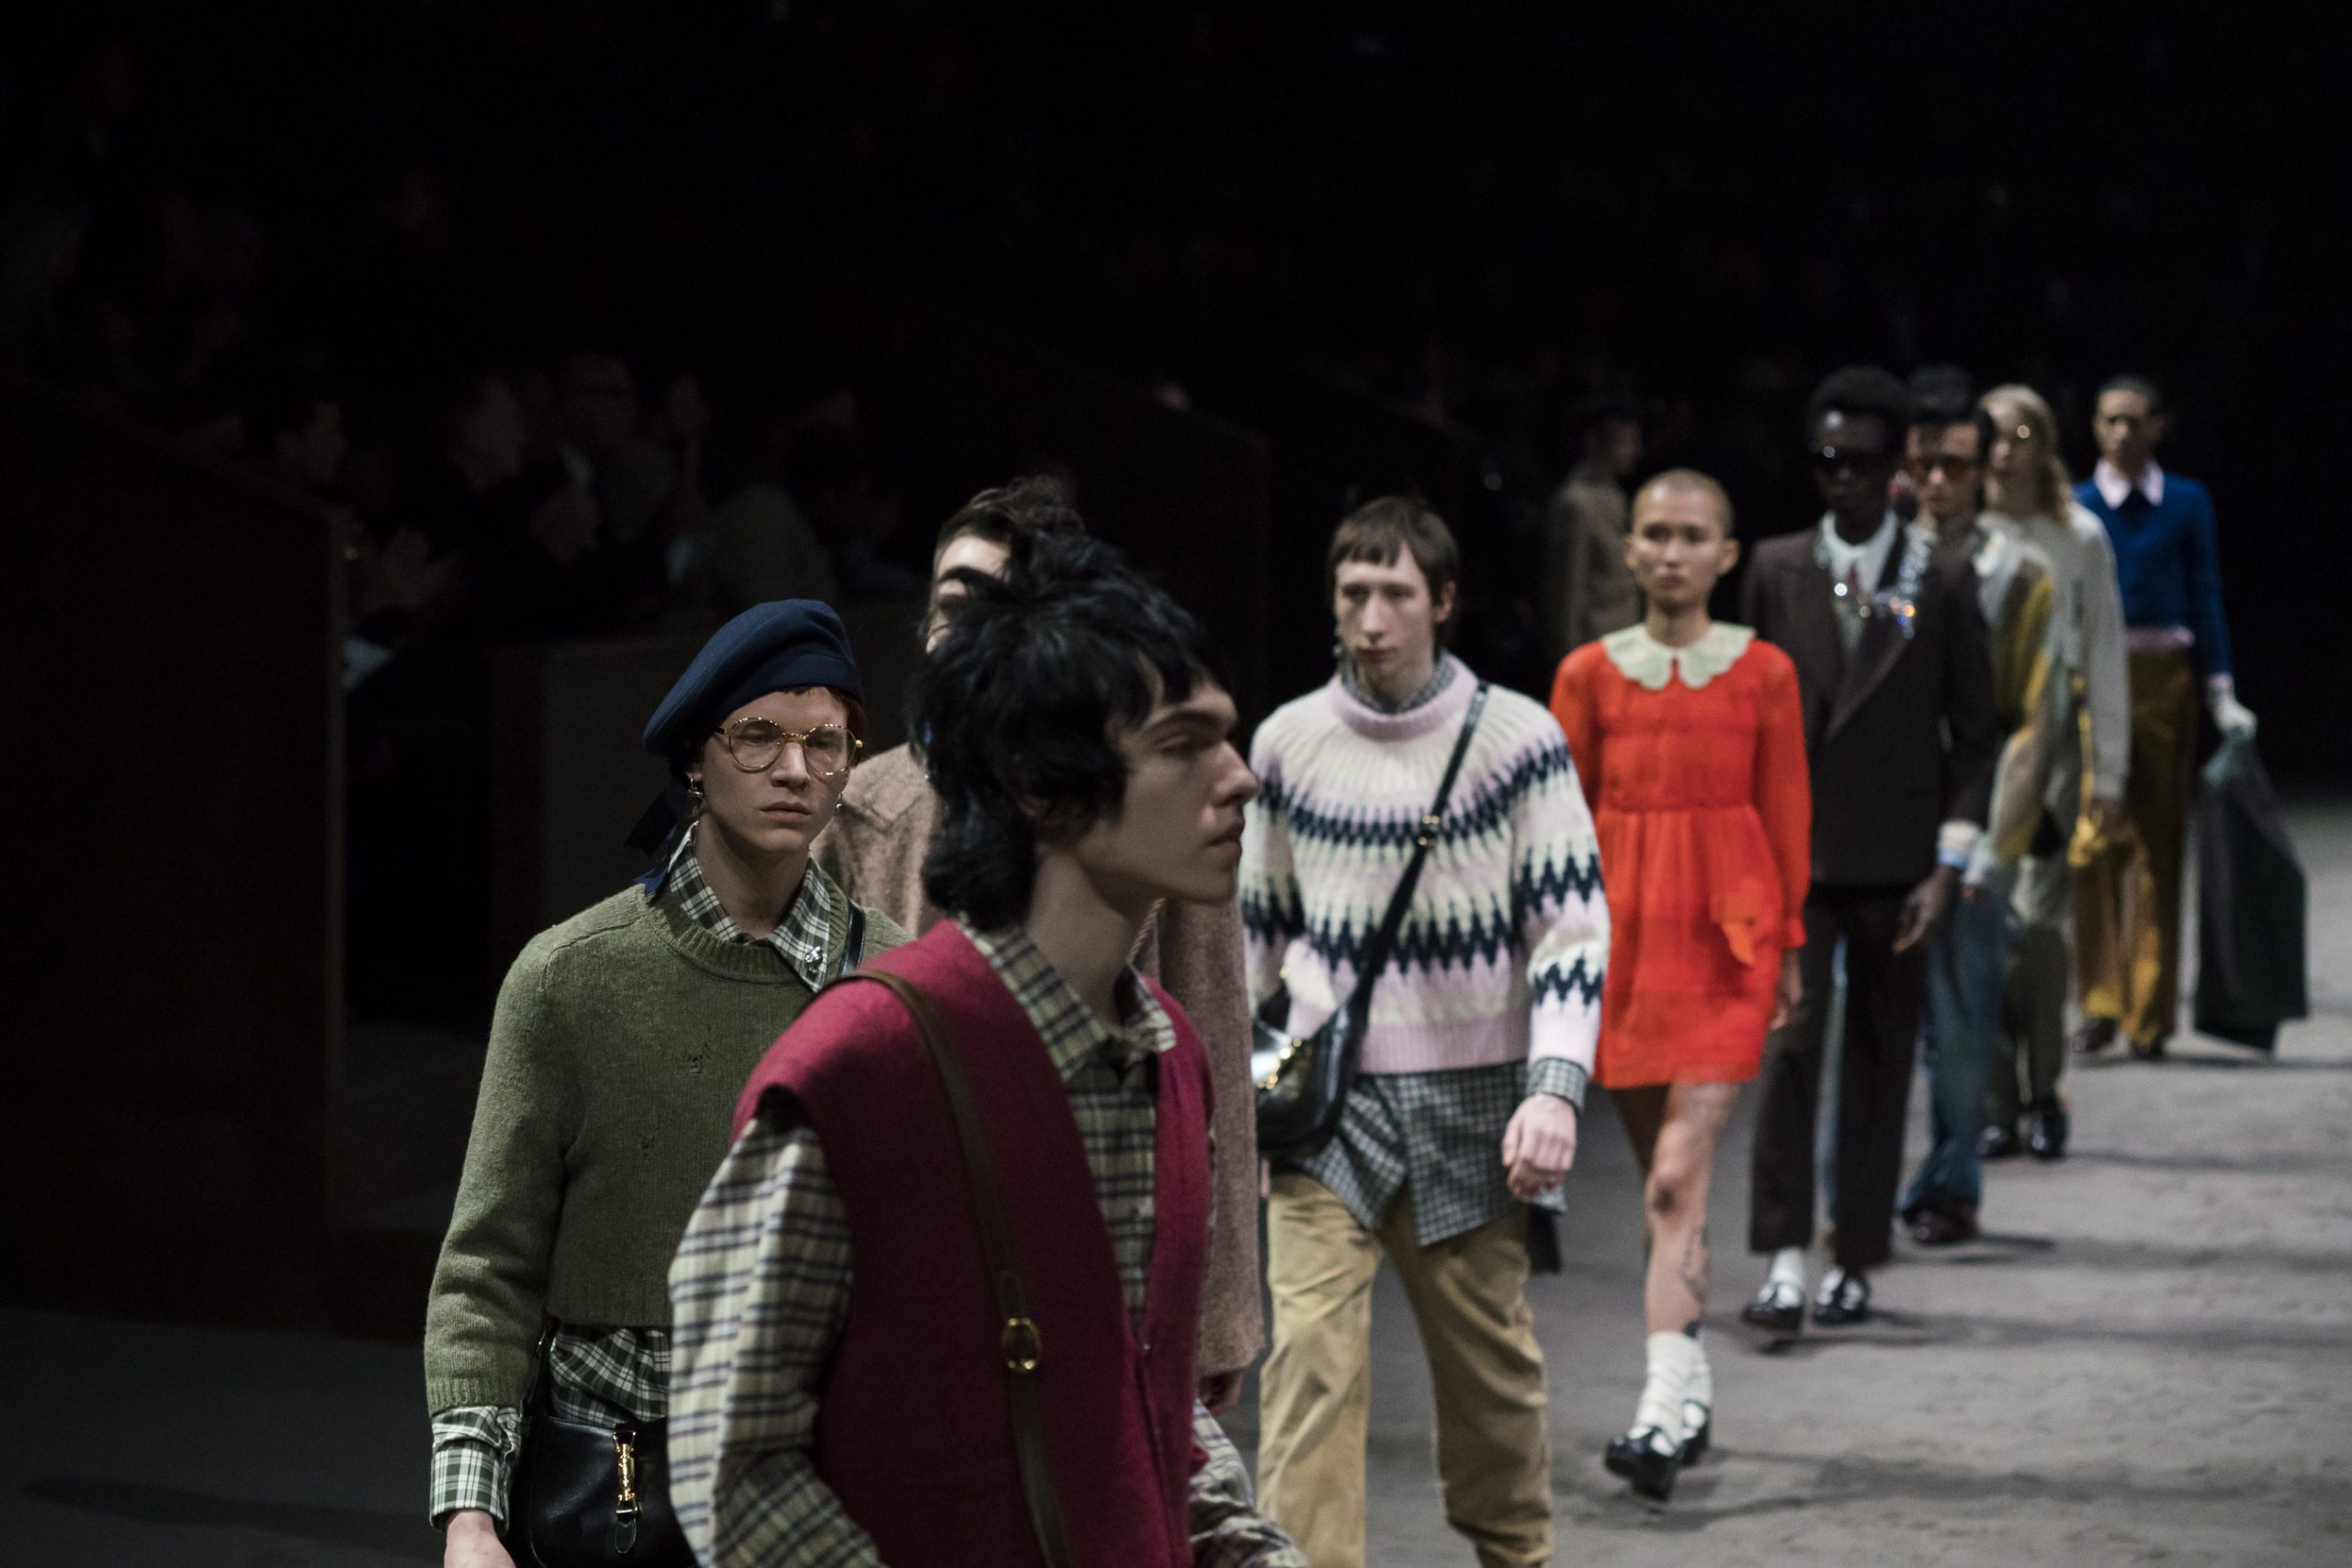 Gucci Fall 2020 Men's Fashion Show Atmosphere